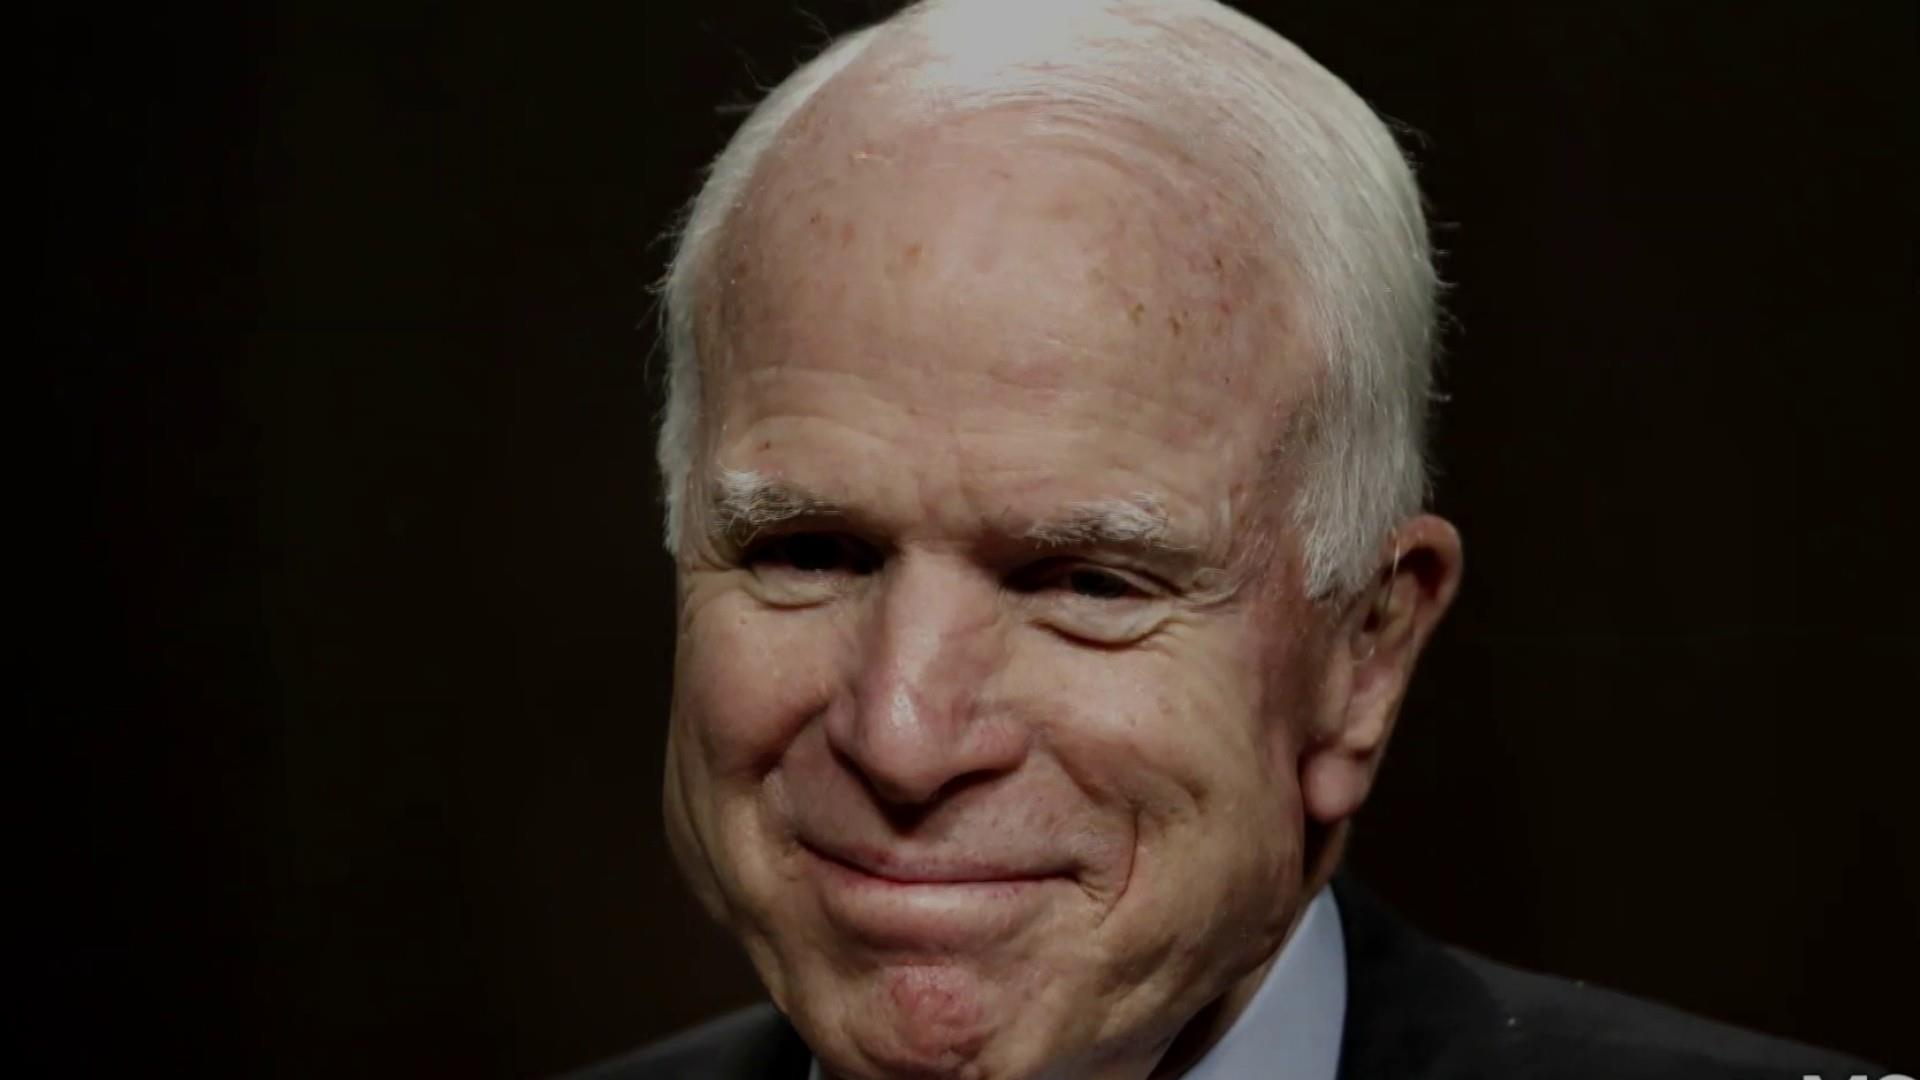 Sen. John McCain returns to Washington one last time